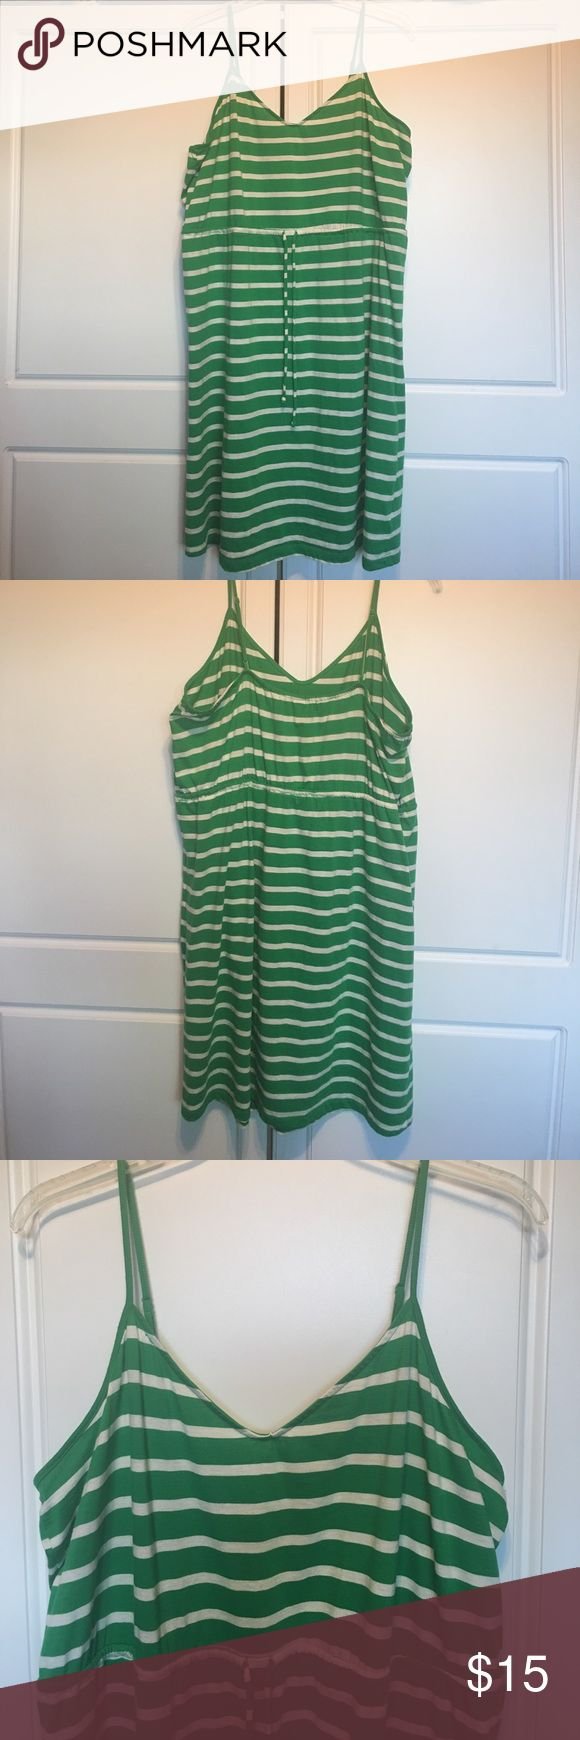 PLUS Old Navy Cami Dress Summer dress!  Gently pre-owned, good condition.  60% cotton, 40% polyester. Old Navy Dresses